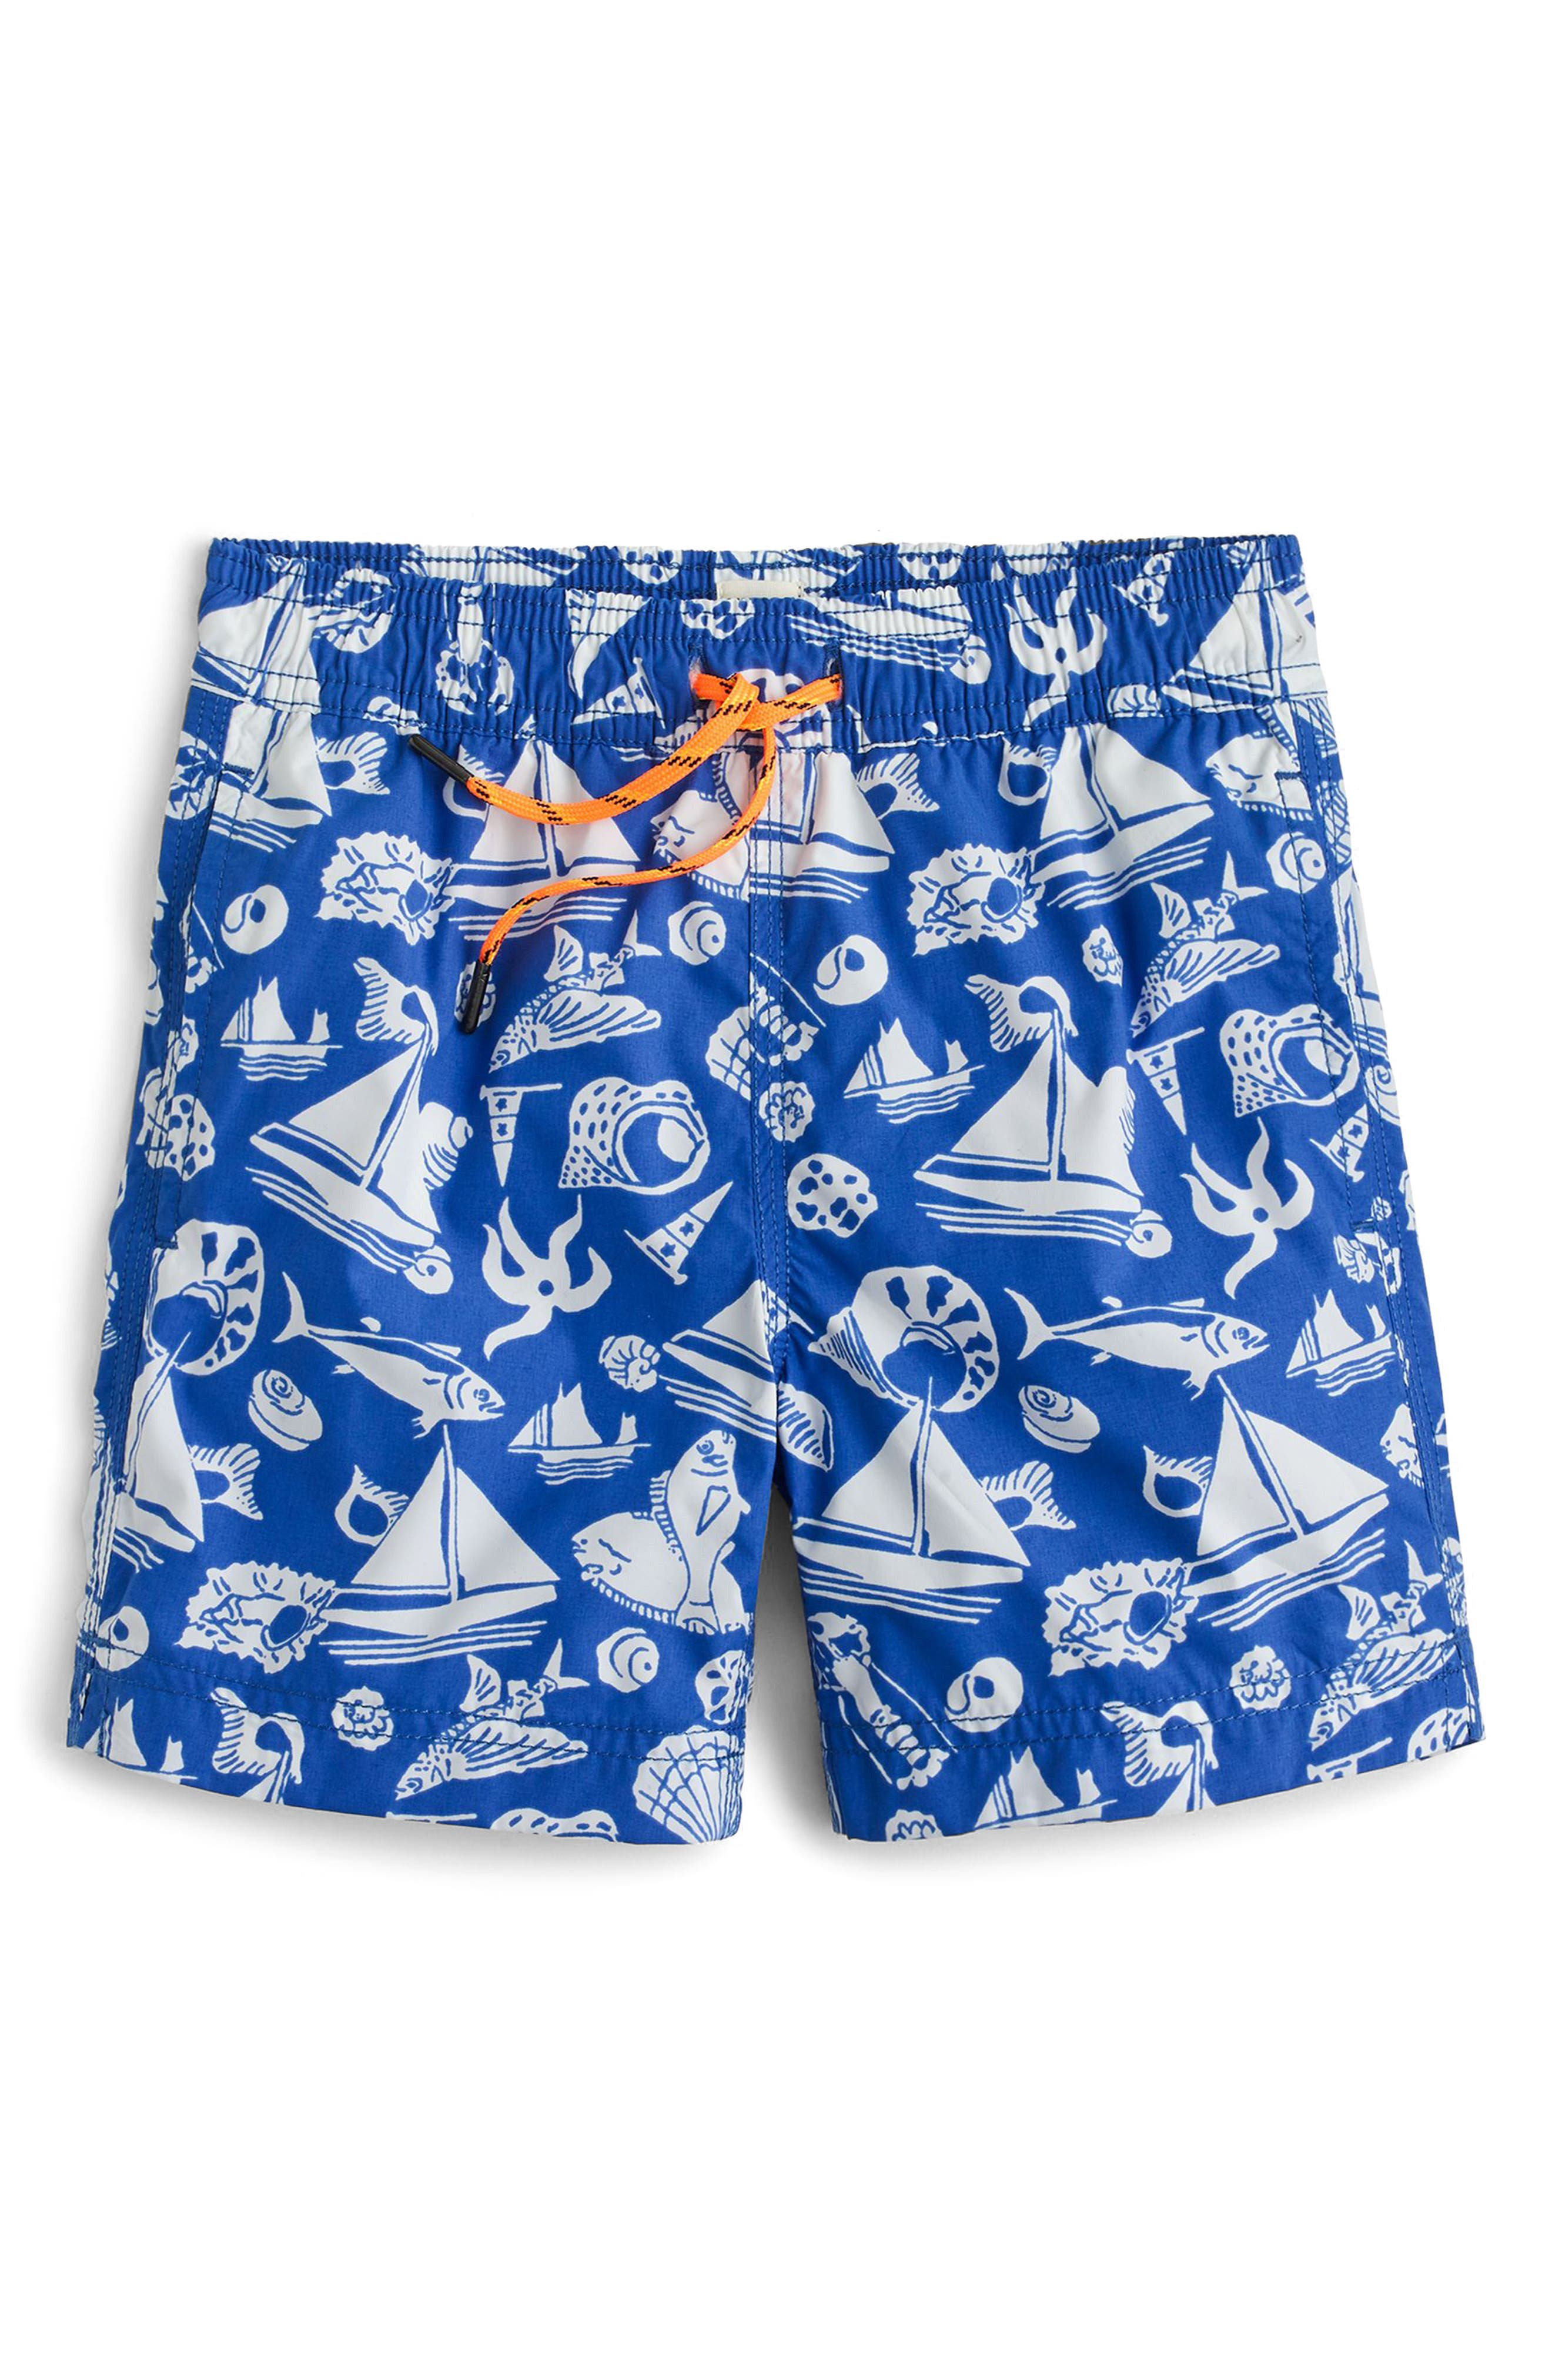 Seaside Life Swim Trunks,                         Main,                         color, Royal Bay